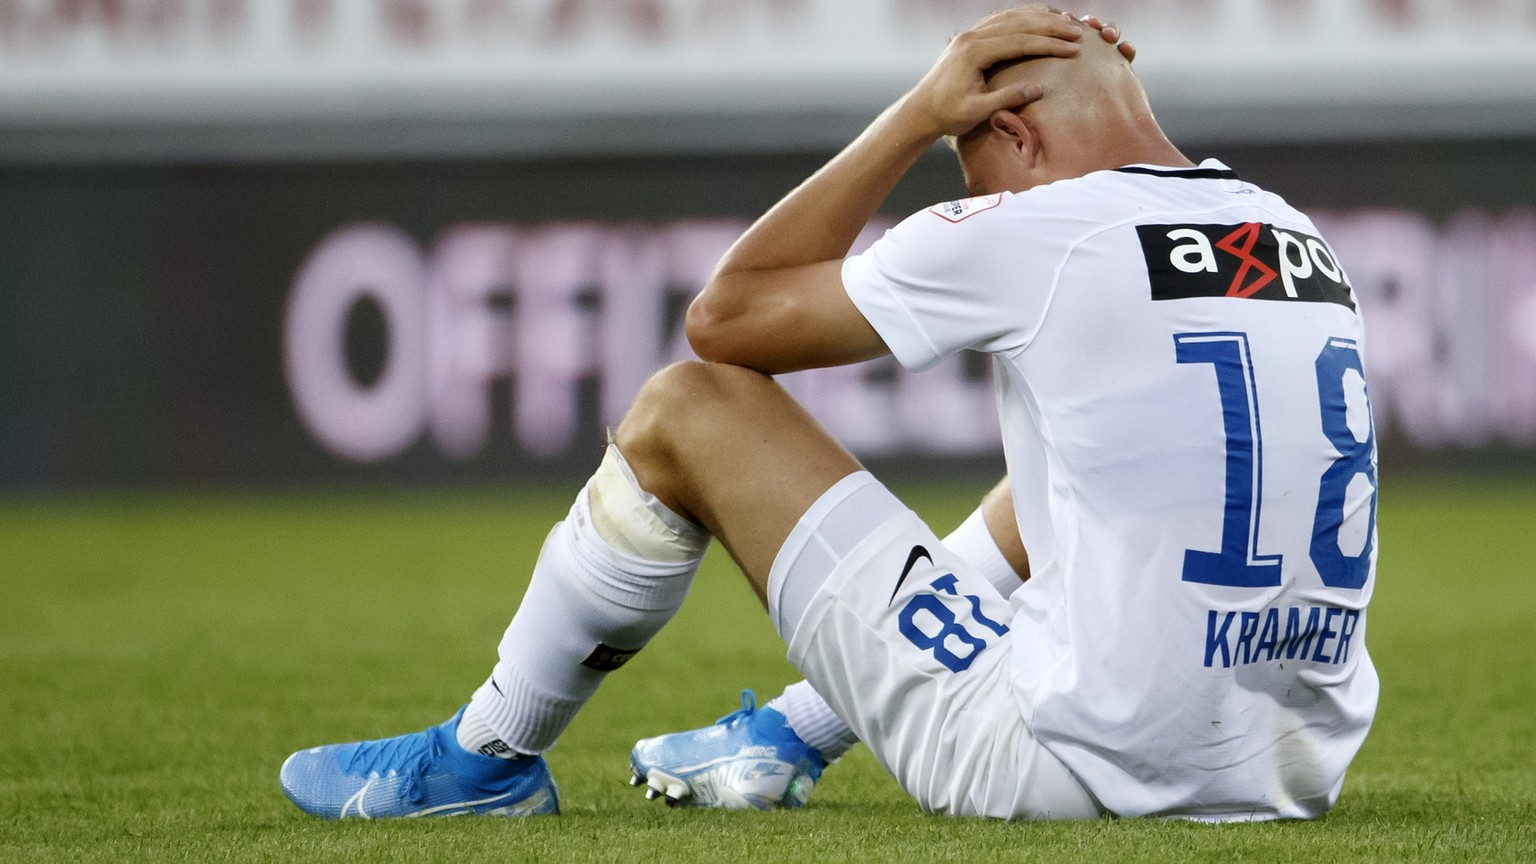 Zurich's forward Blaz Kramer react after losing against Sion, during the Super League soccer match of Swiss Championship between FC Sion and FC Zuerich, at the Stade de Tourbillon stadium, in Sion, Switzerland, Saturday, August 3, 2019. (KEYSTONE/Salvatore Di Nolfi)